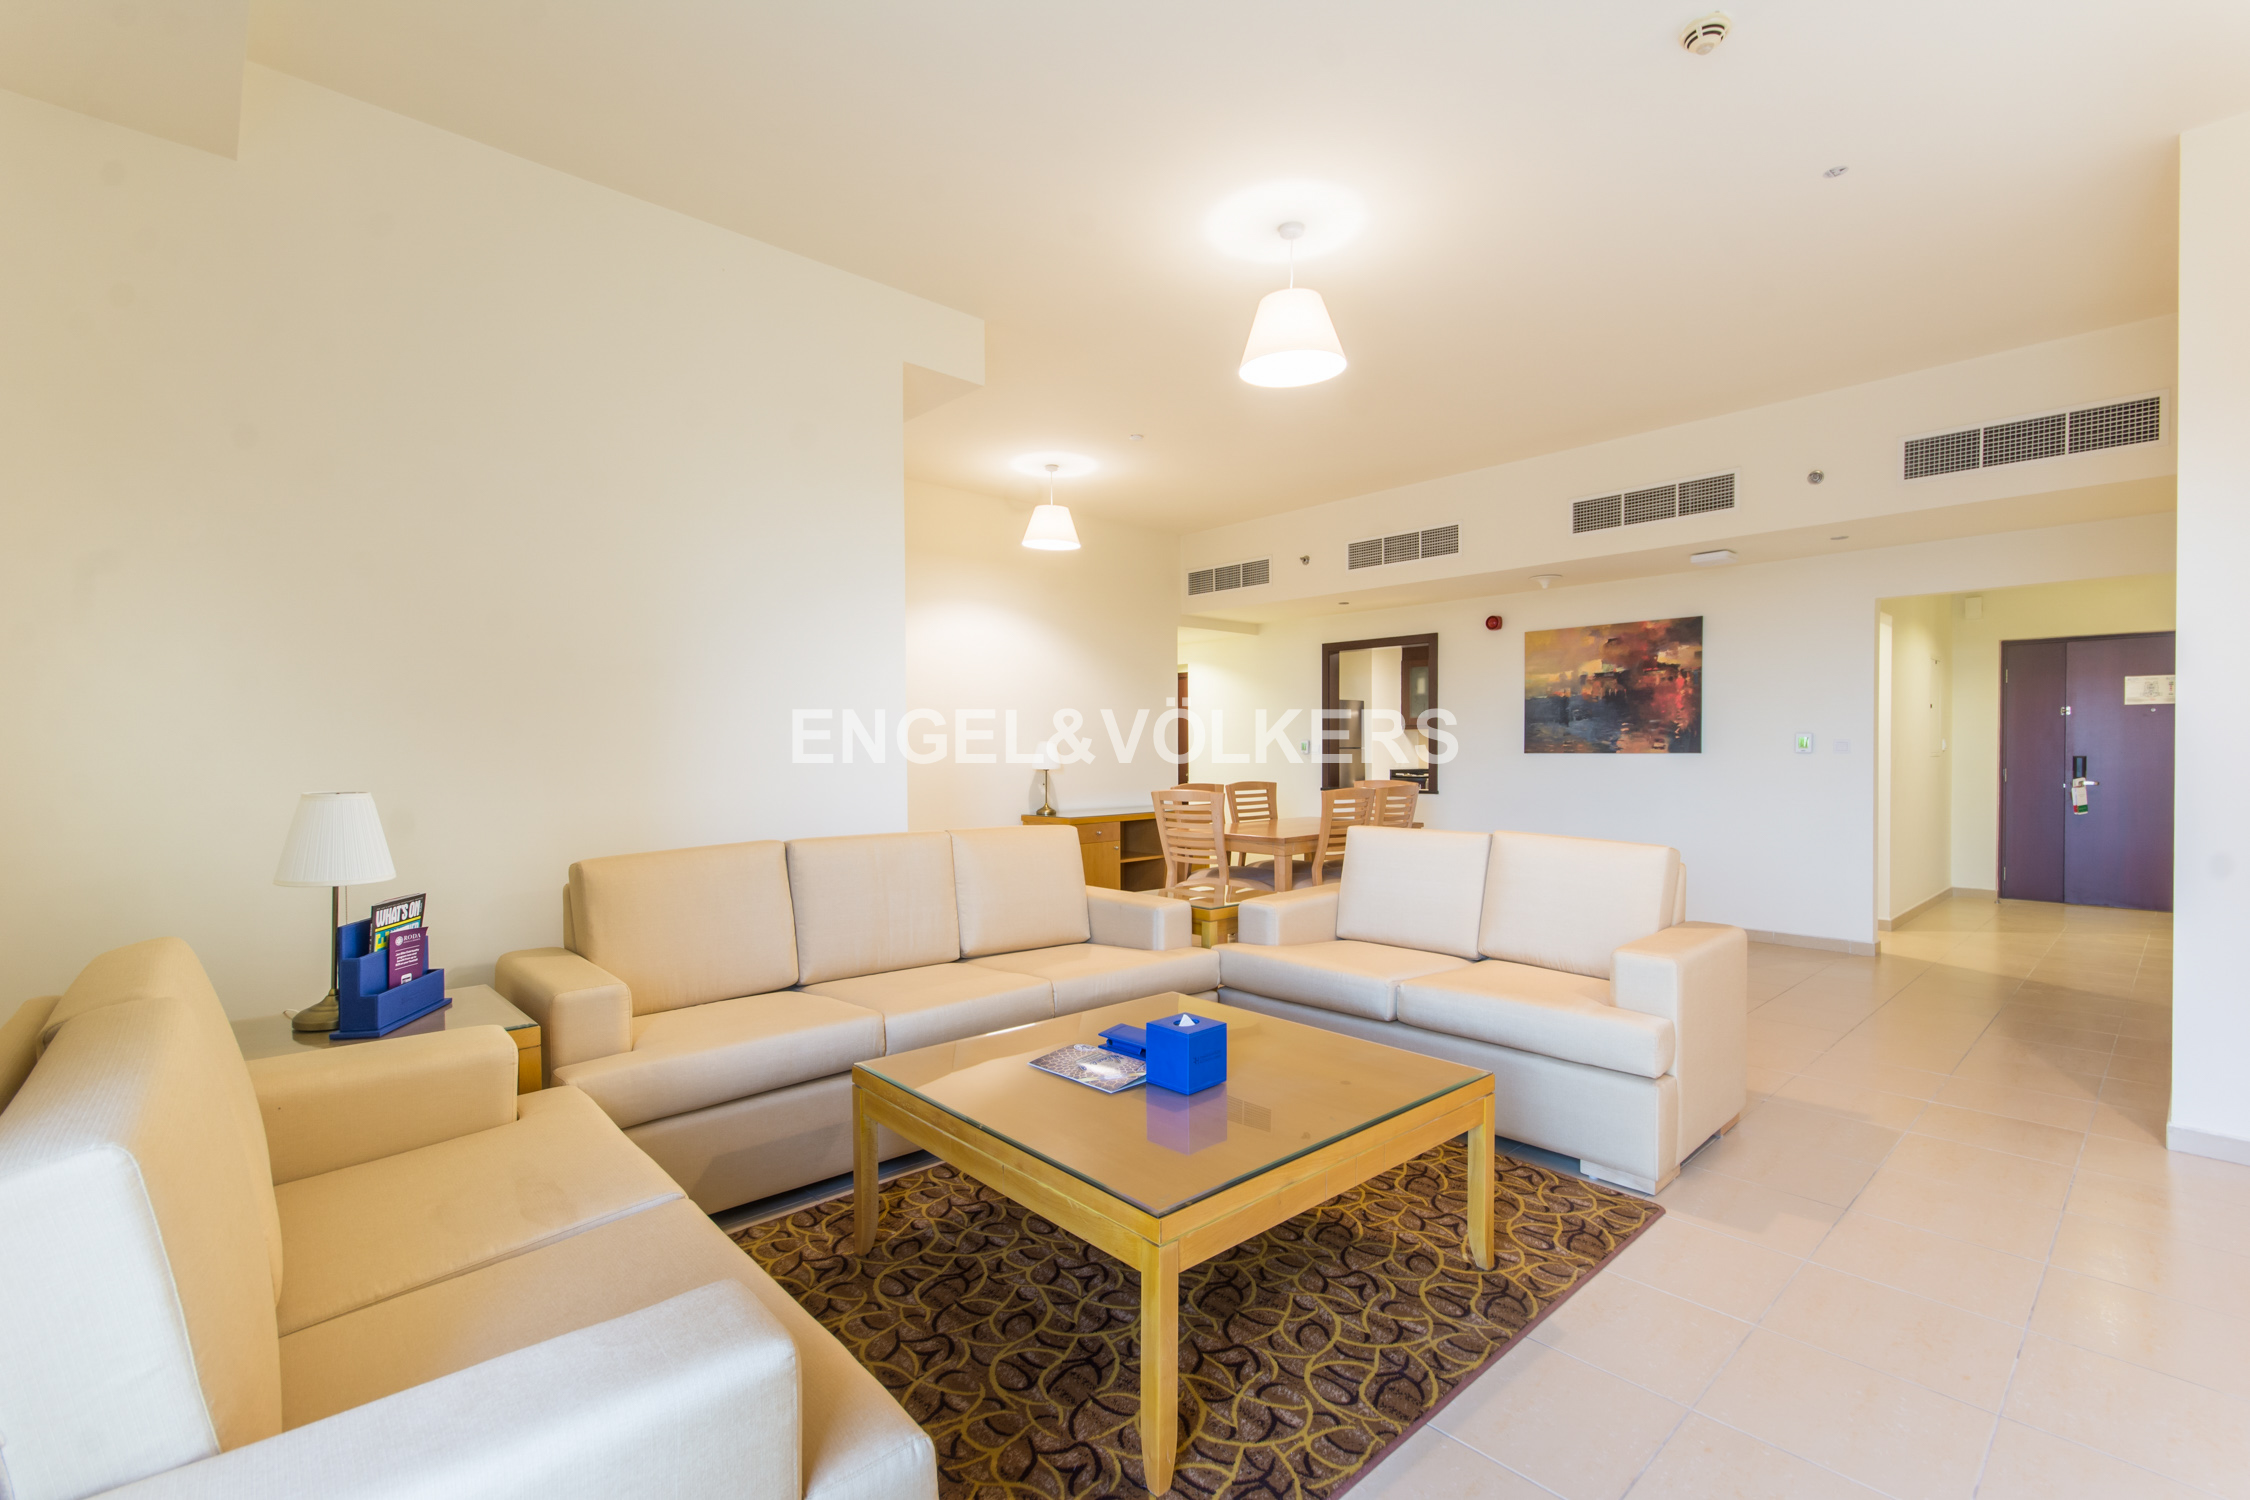 3 bedroom fully furnished apartment for rent on jbr for Furnished room